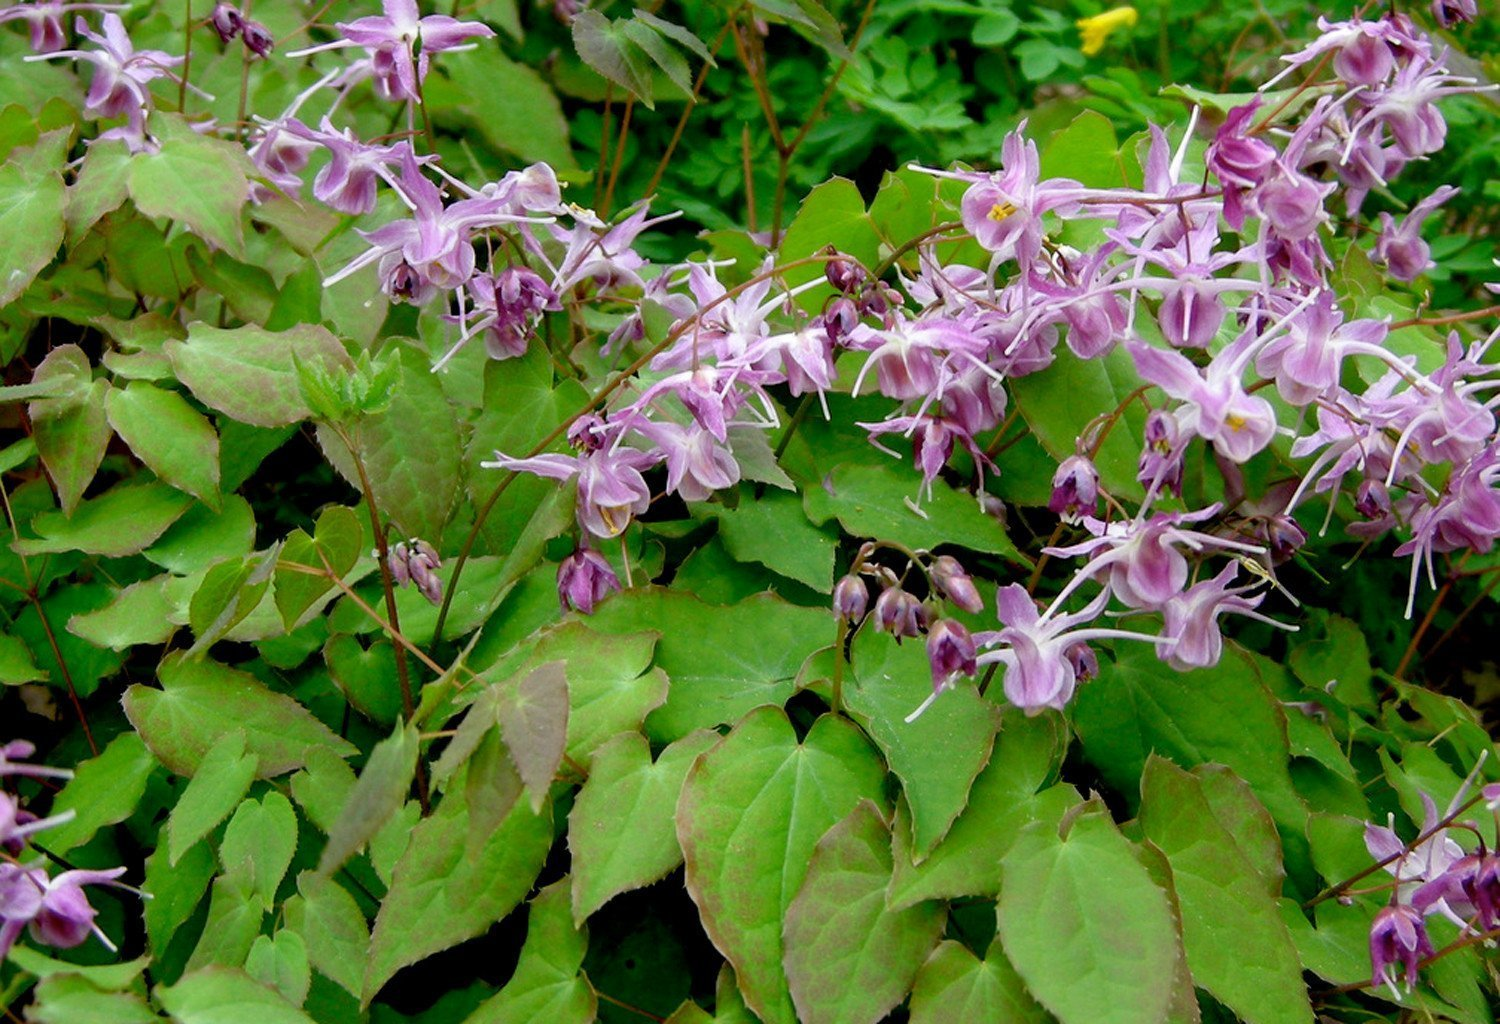 The Best Health Benefits Of Horny Goat Weed - Health Cautions